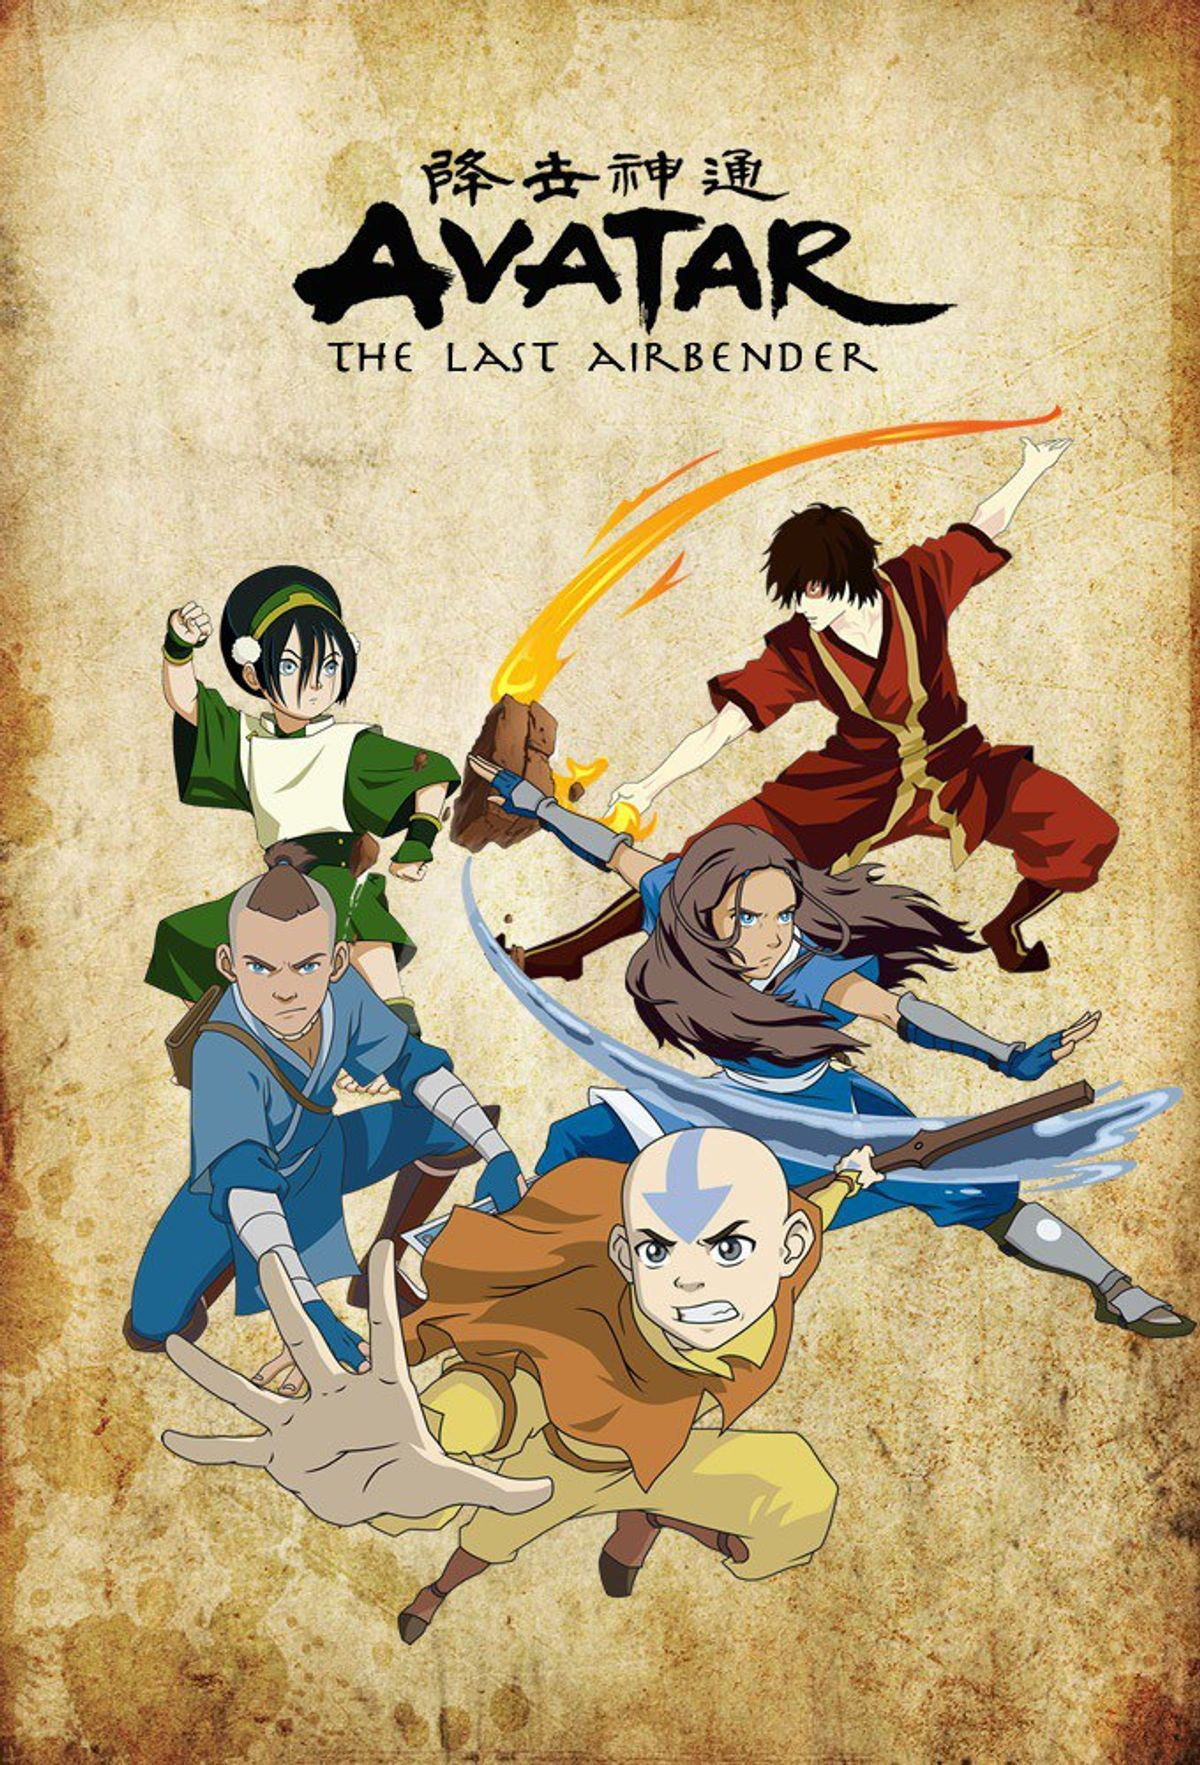 8 Reasons Why We Love 'Avatar:The Last Airbender'